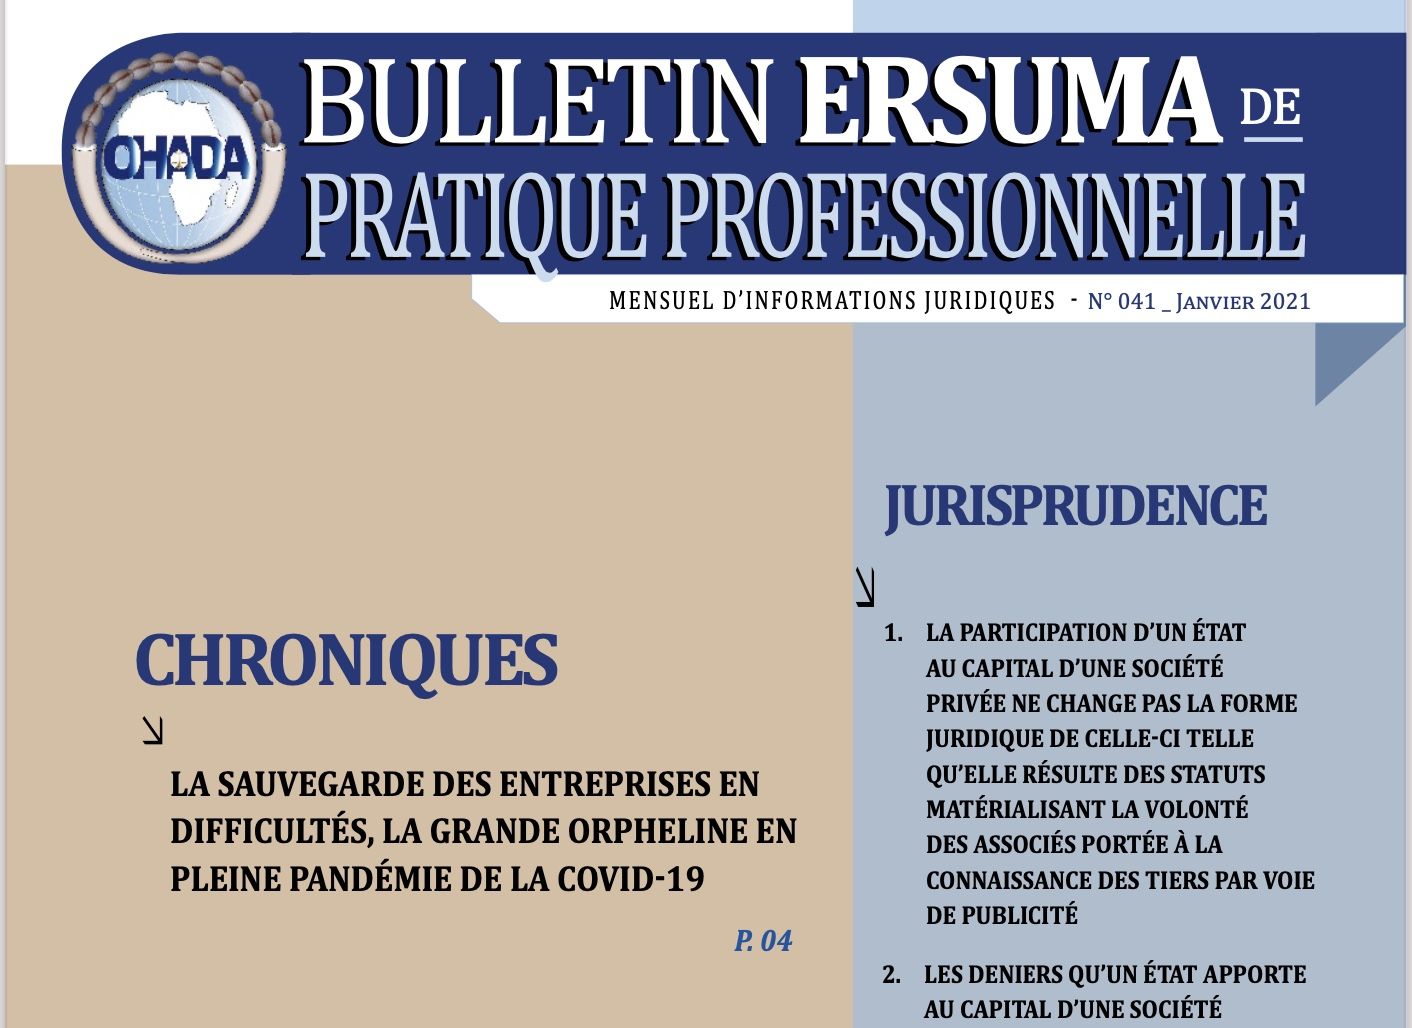 OHADA / RELEASE OF THE 41st ISSUE OF ERSUMA BULLETIN OF PROFESSIONAL PRACTICE